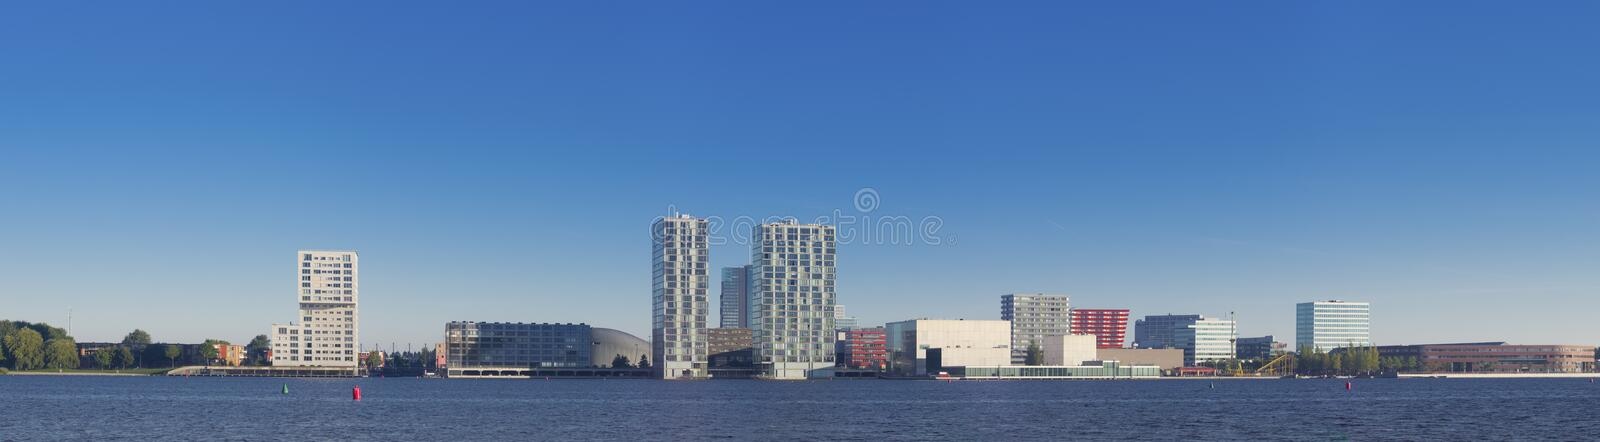 City skyline. Skyline of Almere, Netherlands. Almere is the youngest and fastest growing city in the country, founded around 1975 royalty free stock photos